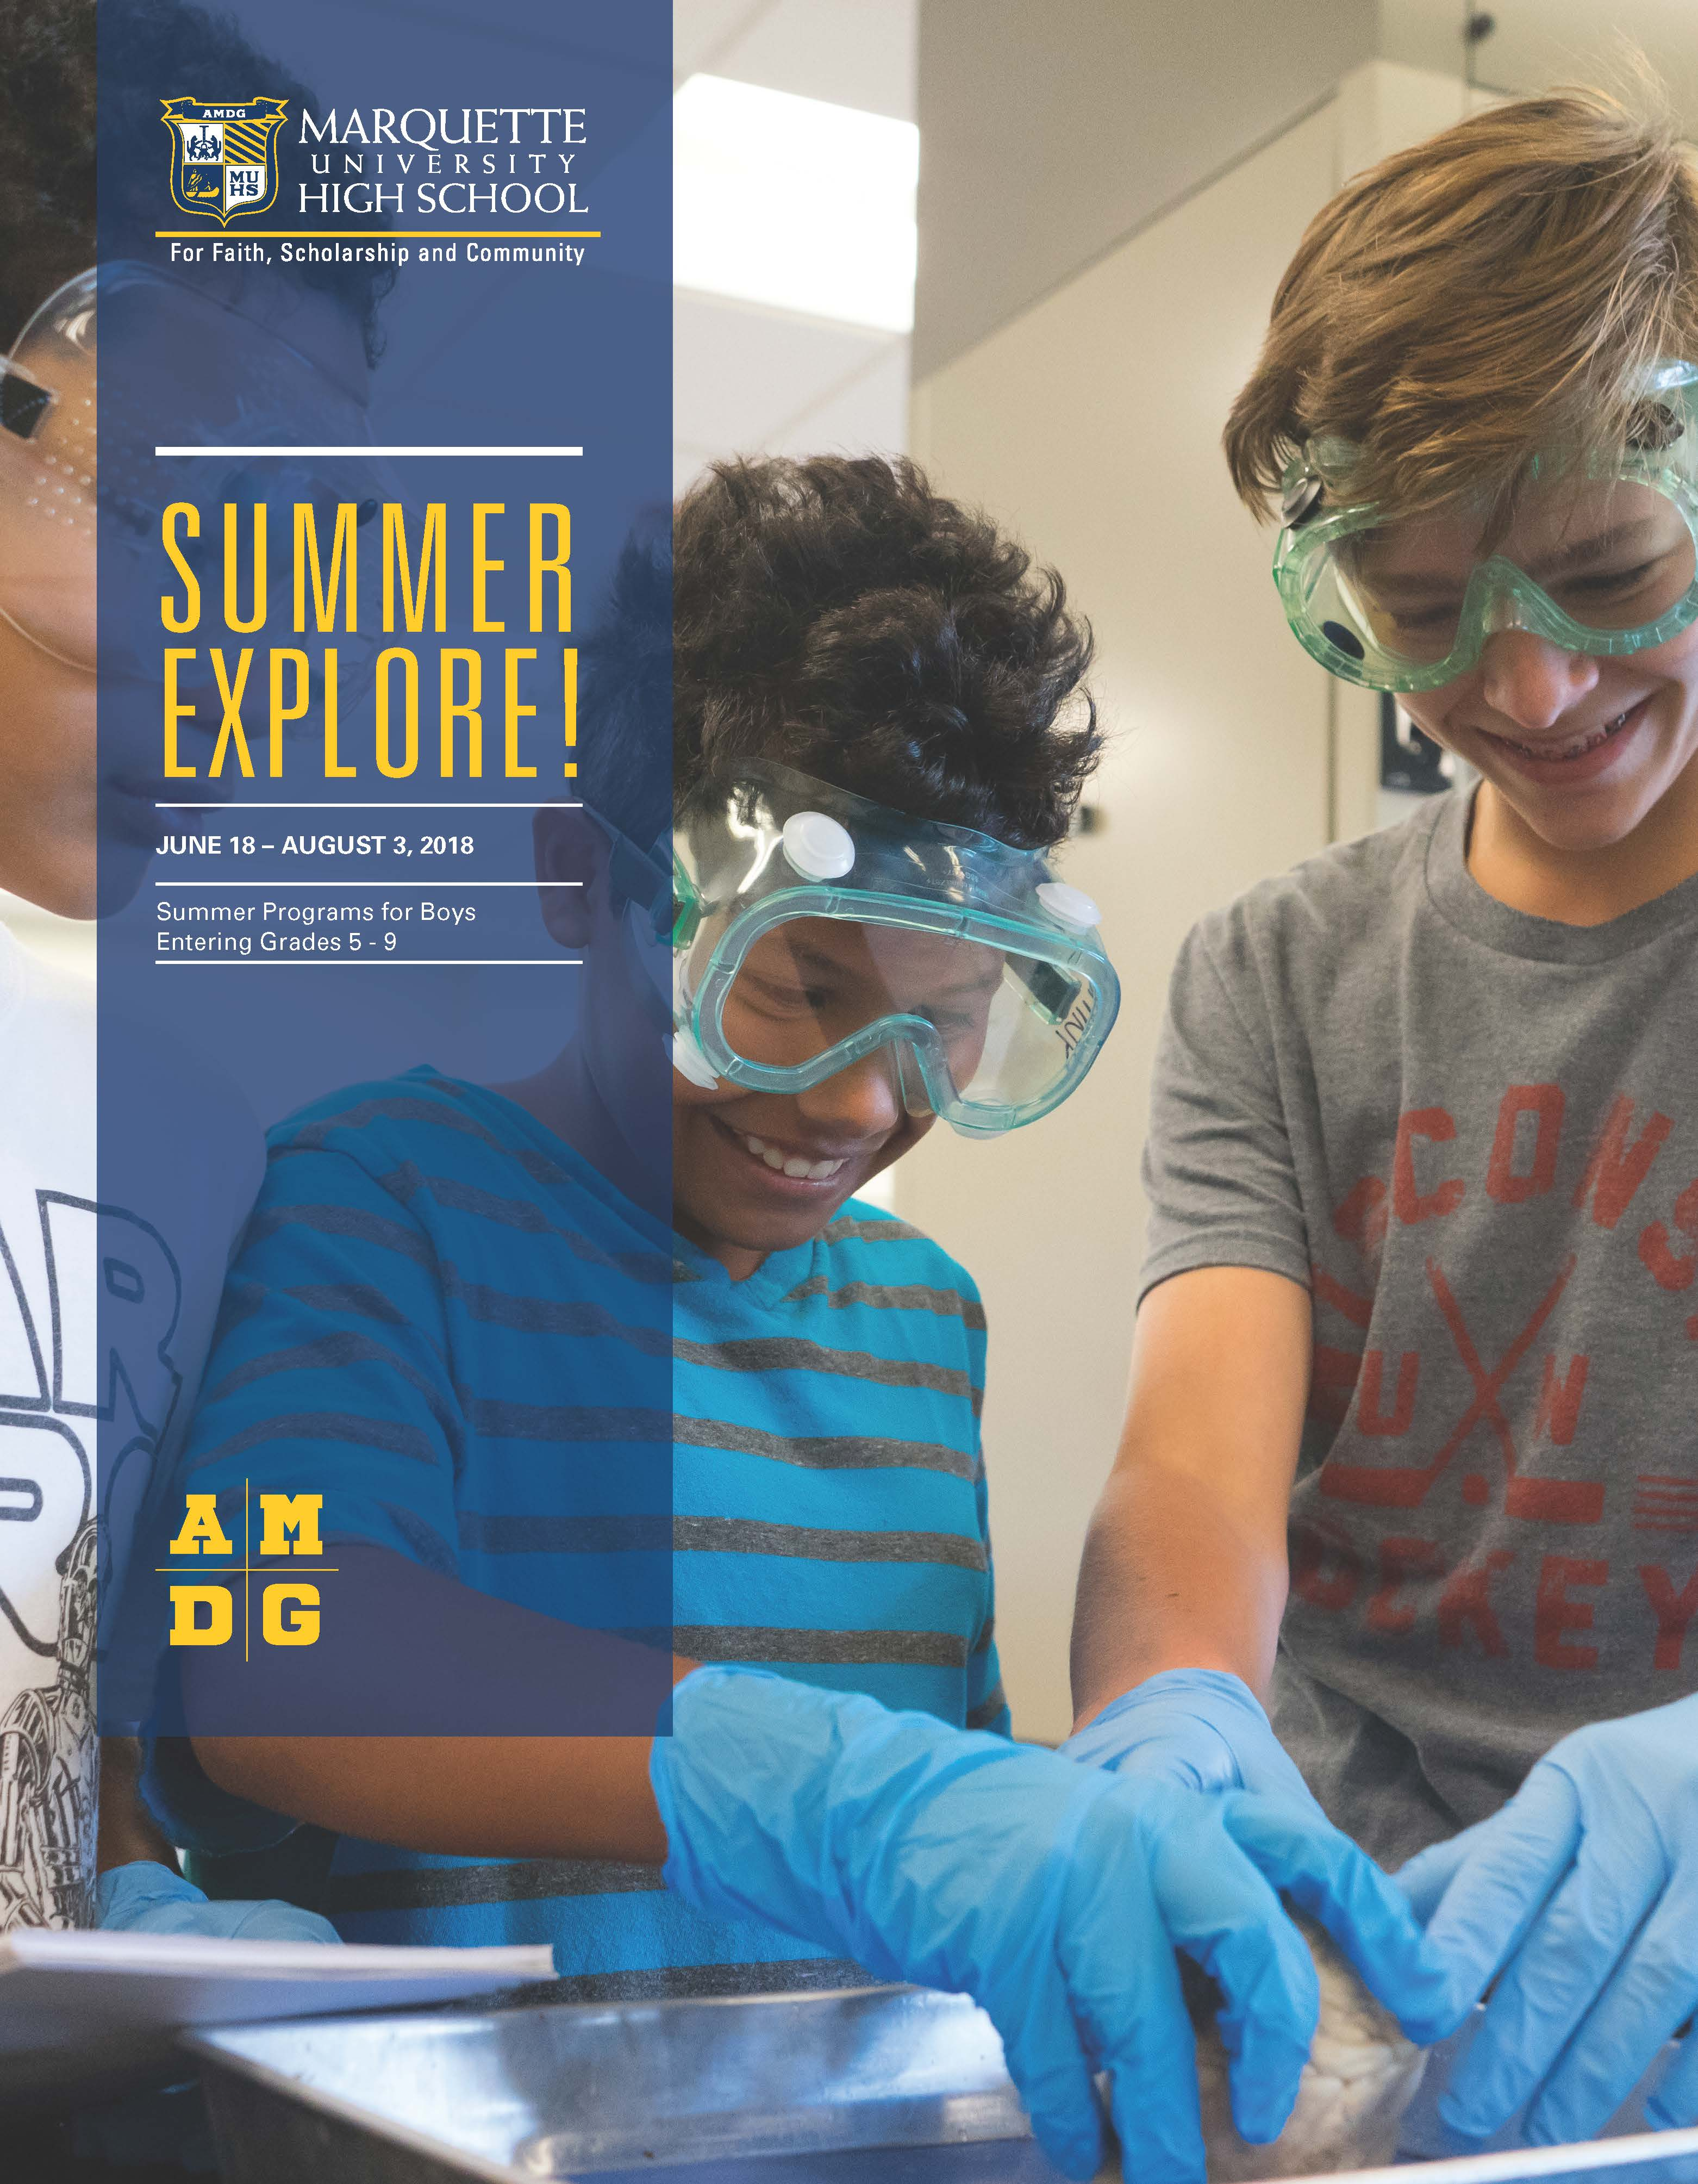 Summer EXPLORE Brochure